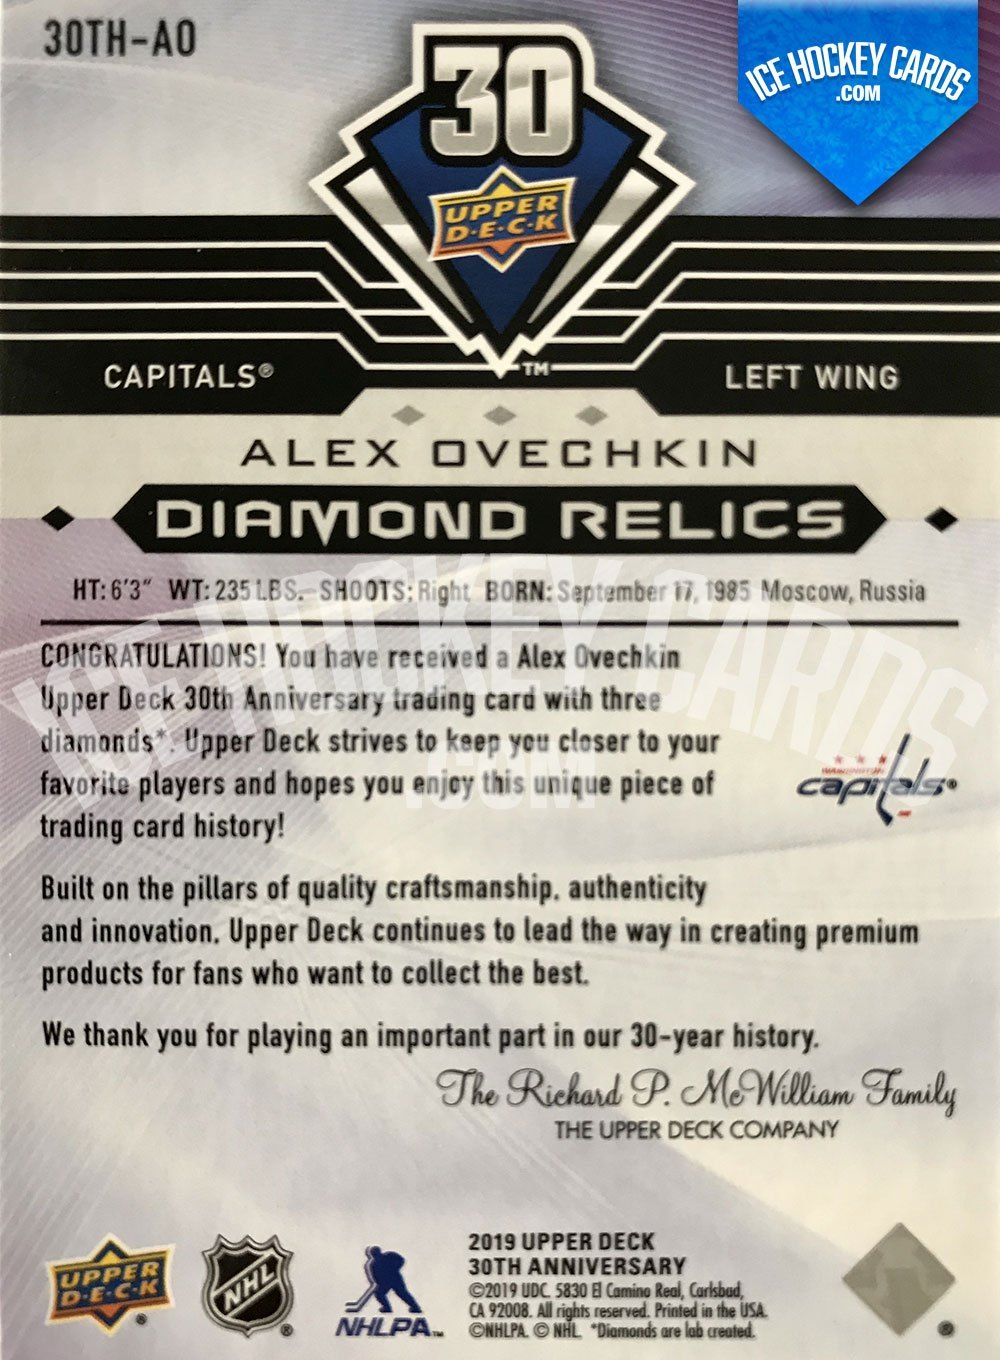 Upper Deck - Series 2019-20 - Alexander Ovechkin Triple Diamond Relics Upper Deck 30th Anniversary Trading Card back RARE